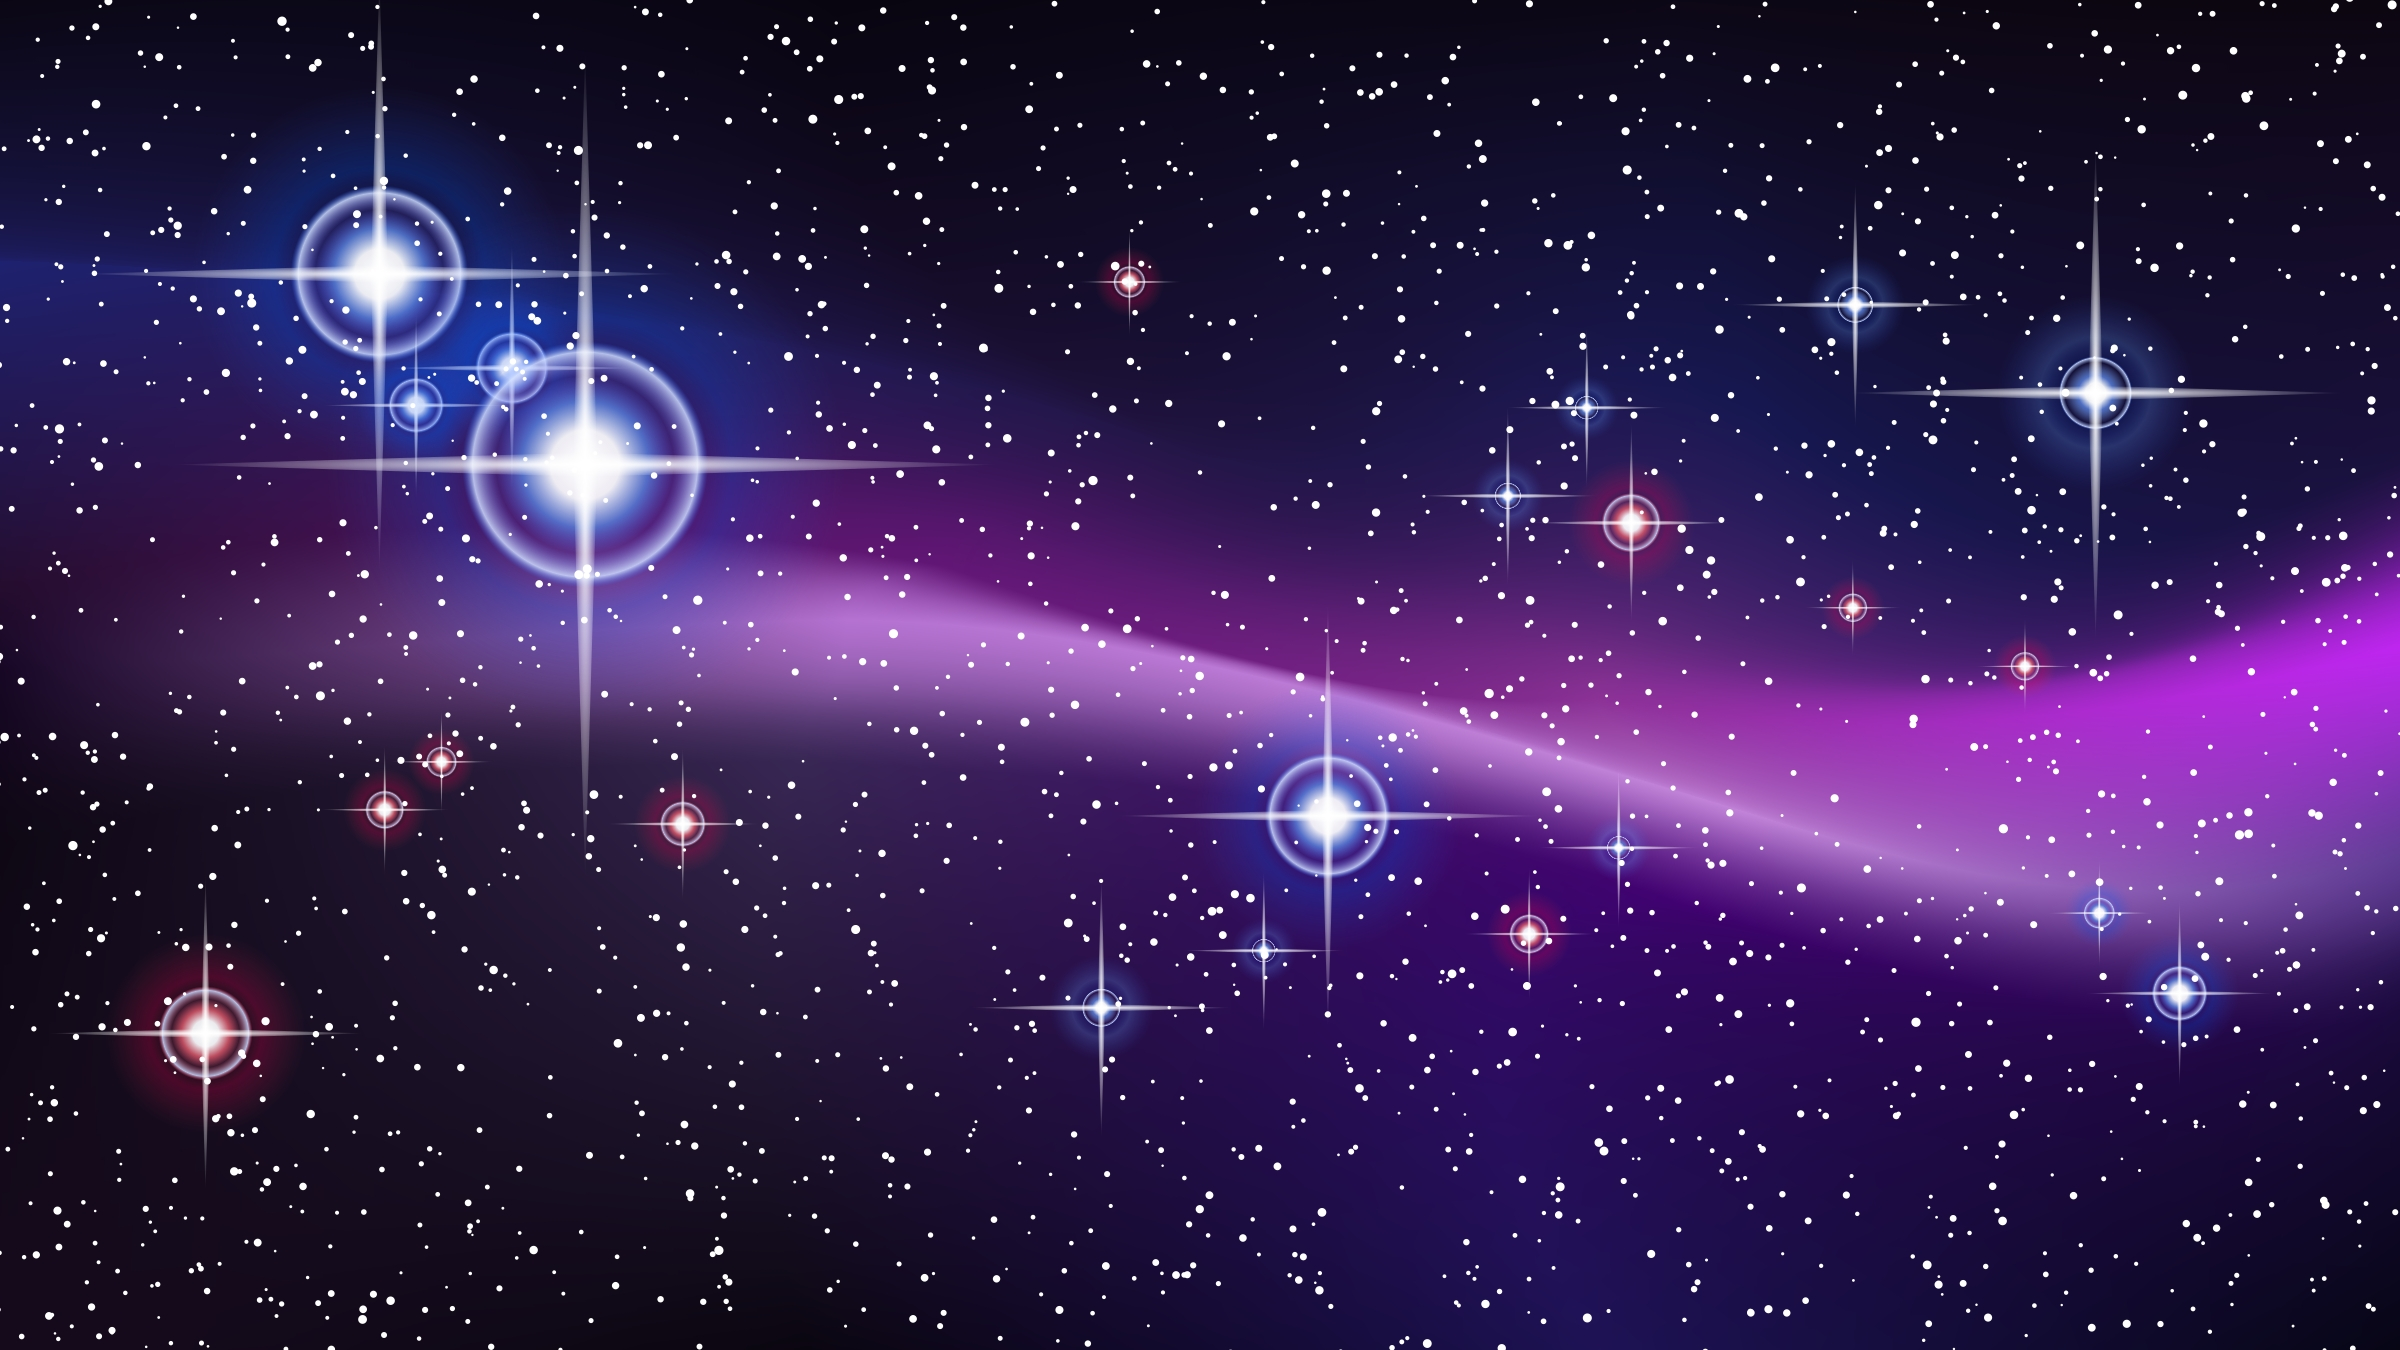 New design digital collection. Galaxy clipart